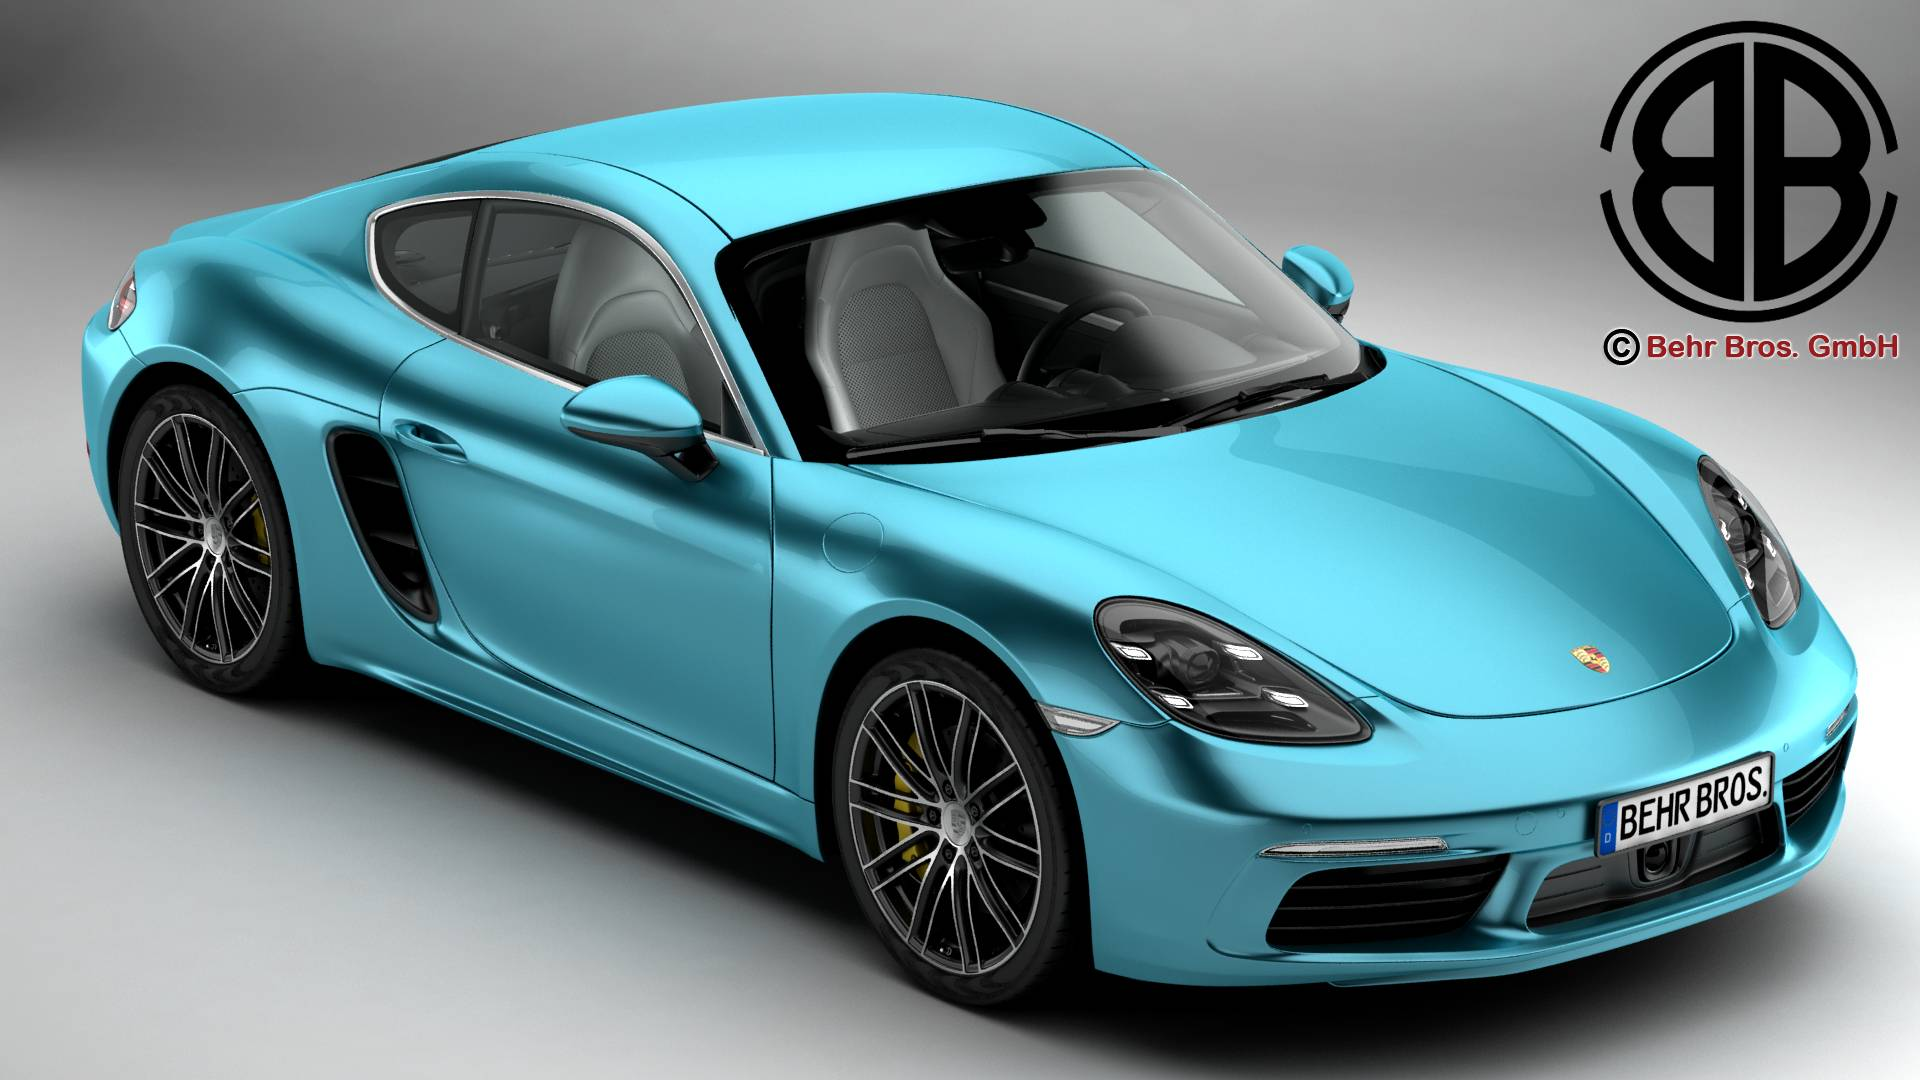 porsche 718 cayman s 2017 3d model 3ds max fbx c4d le do thoil 220102